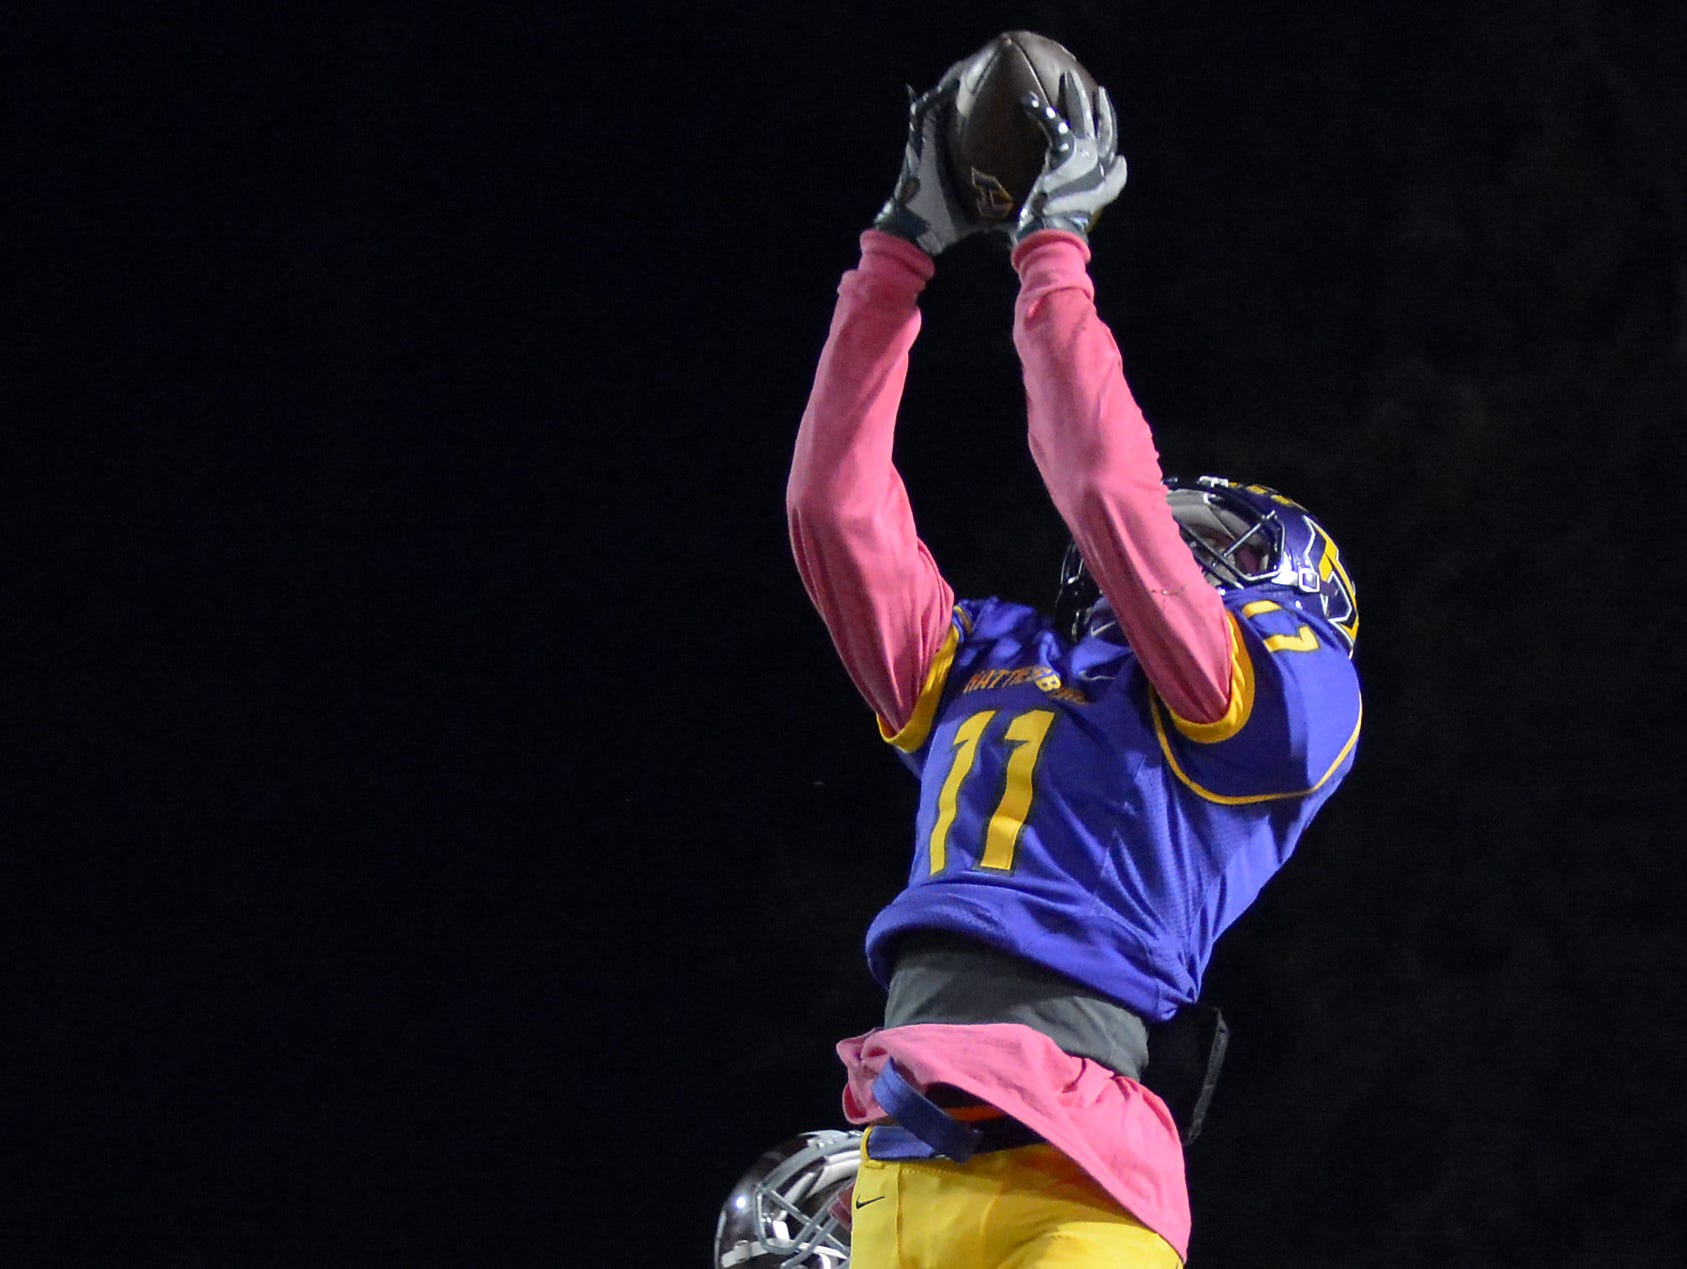 Hattiesburg's Jordan Murphy catches a pass during a game against Picayune Oct. 9 at Hattiesburg High School.